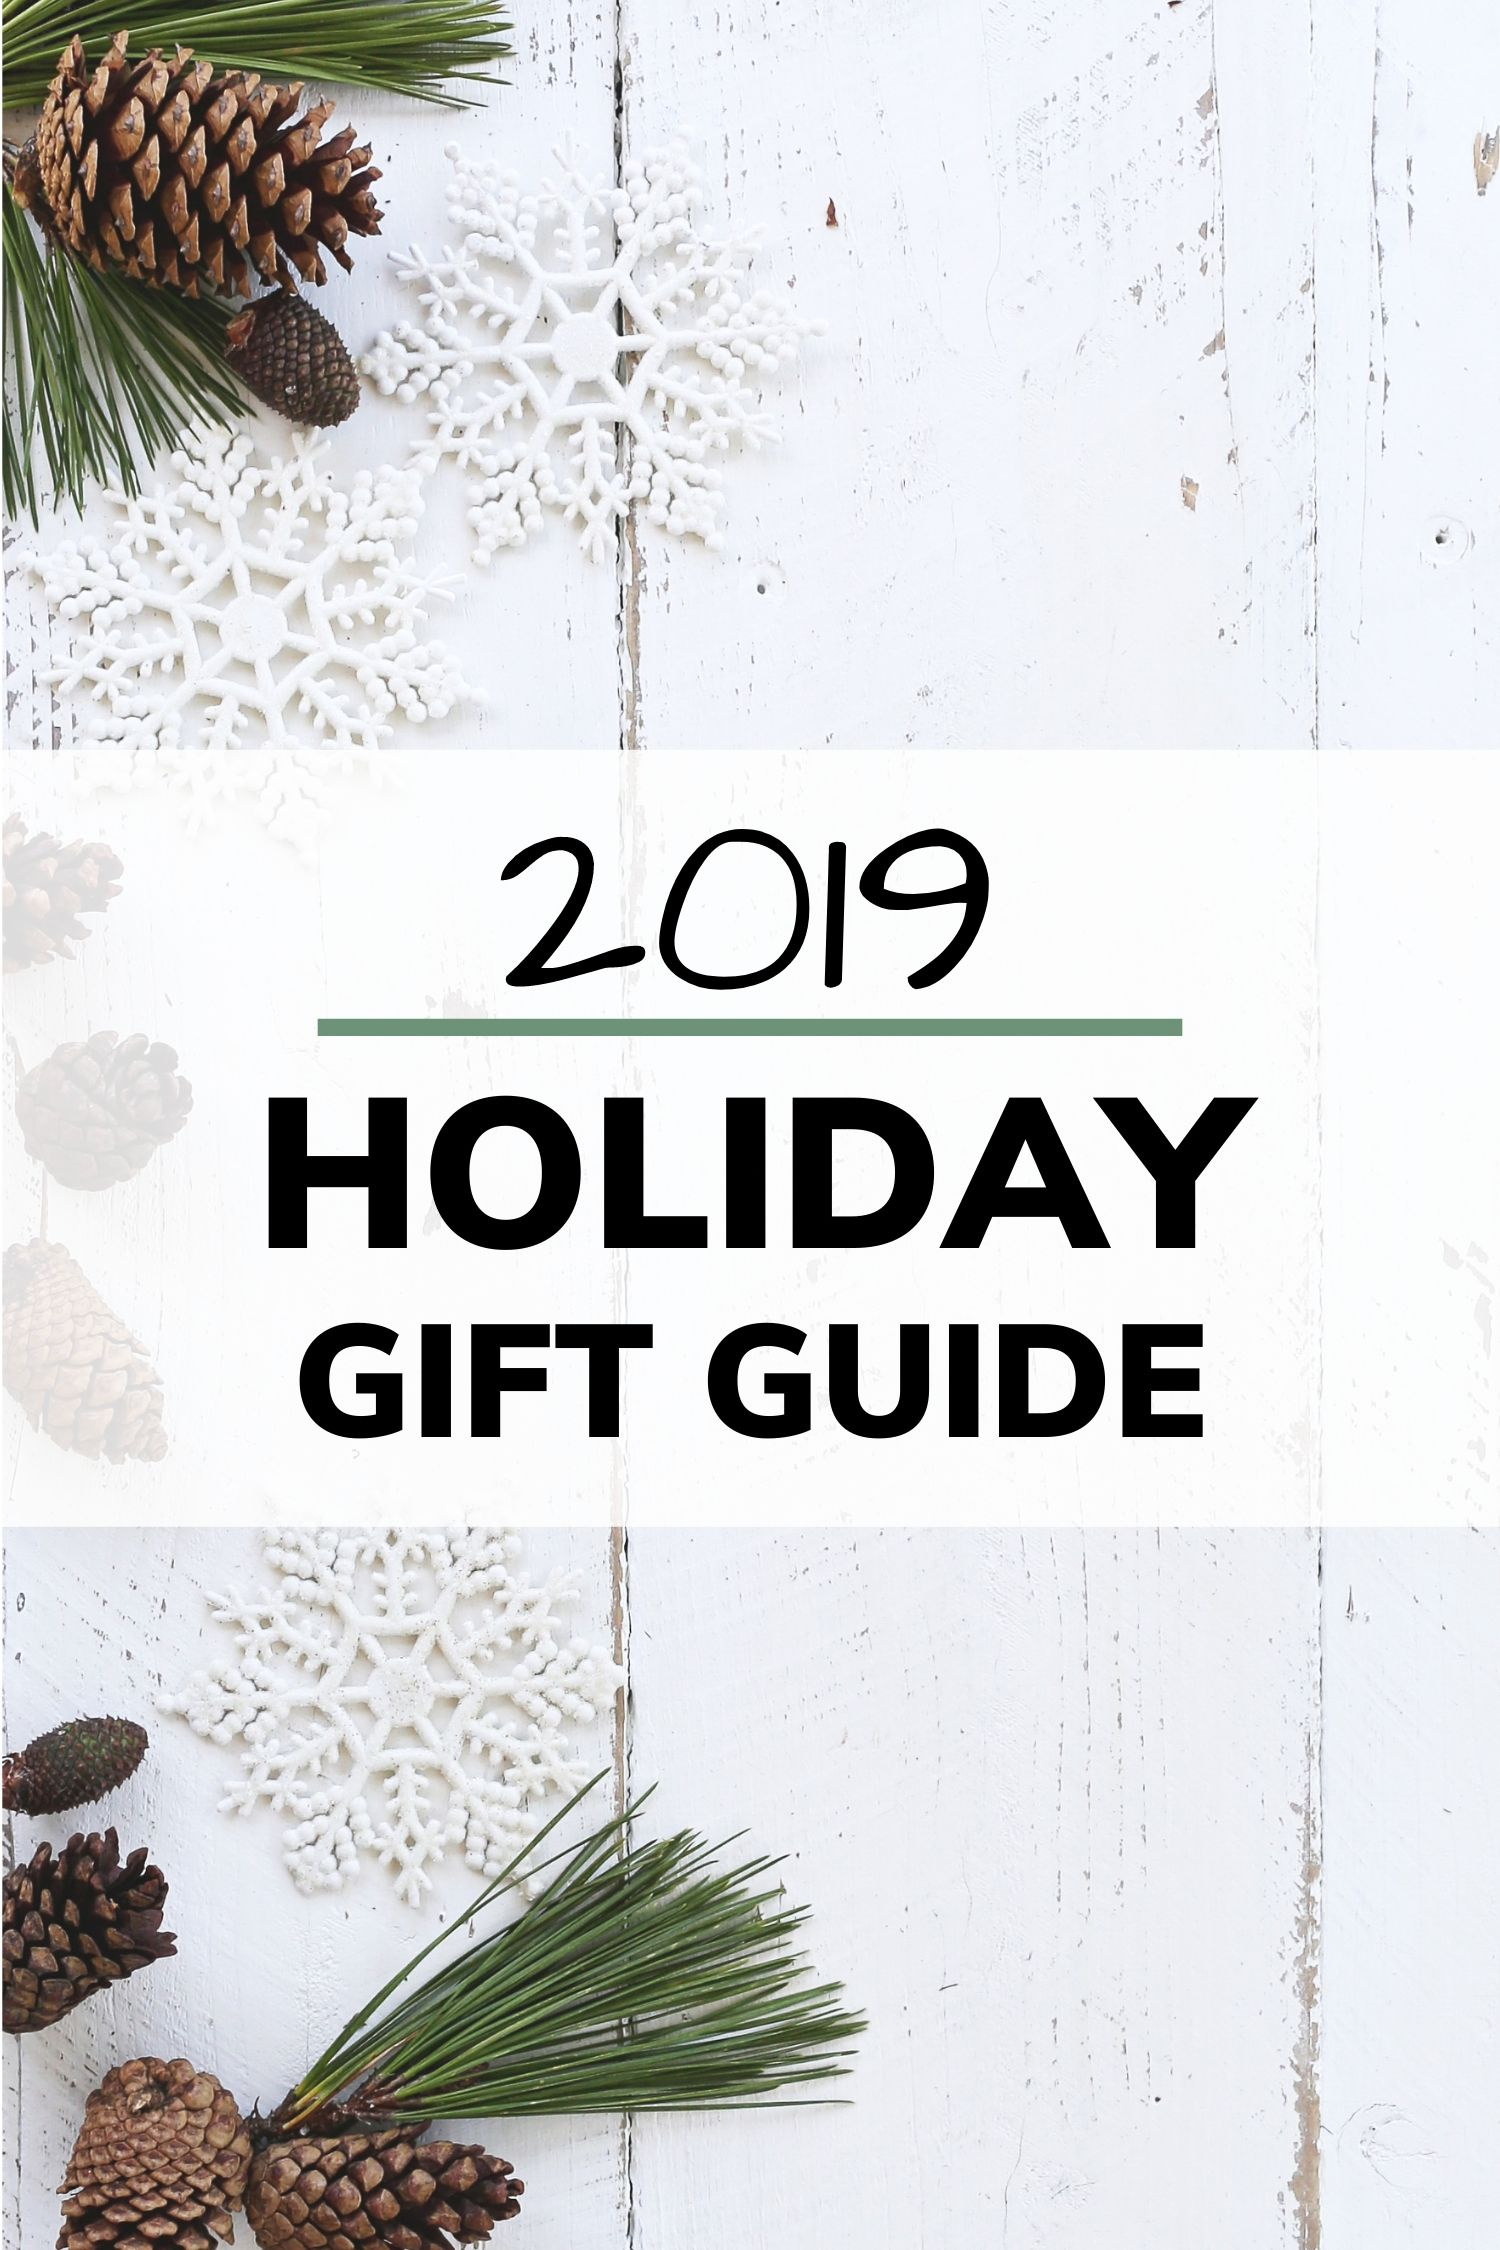 Christmas decoration on white washed wood with text going across that says 2019 Holiday Gift Guide